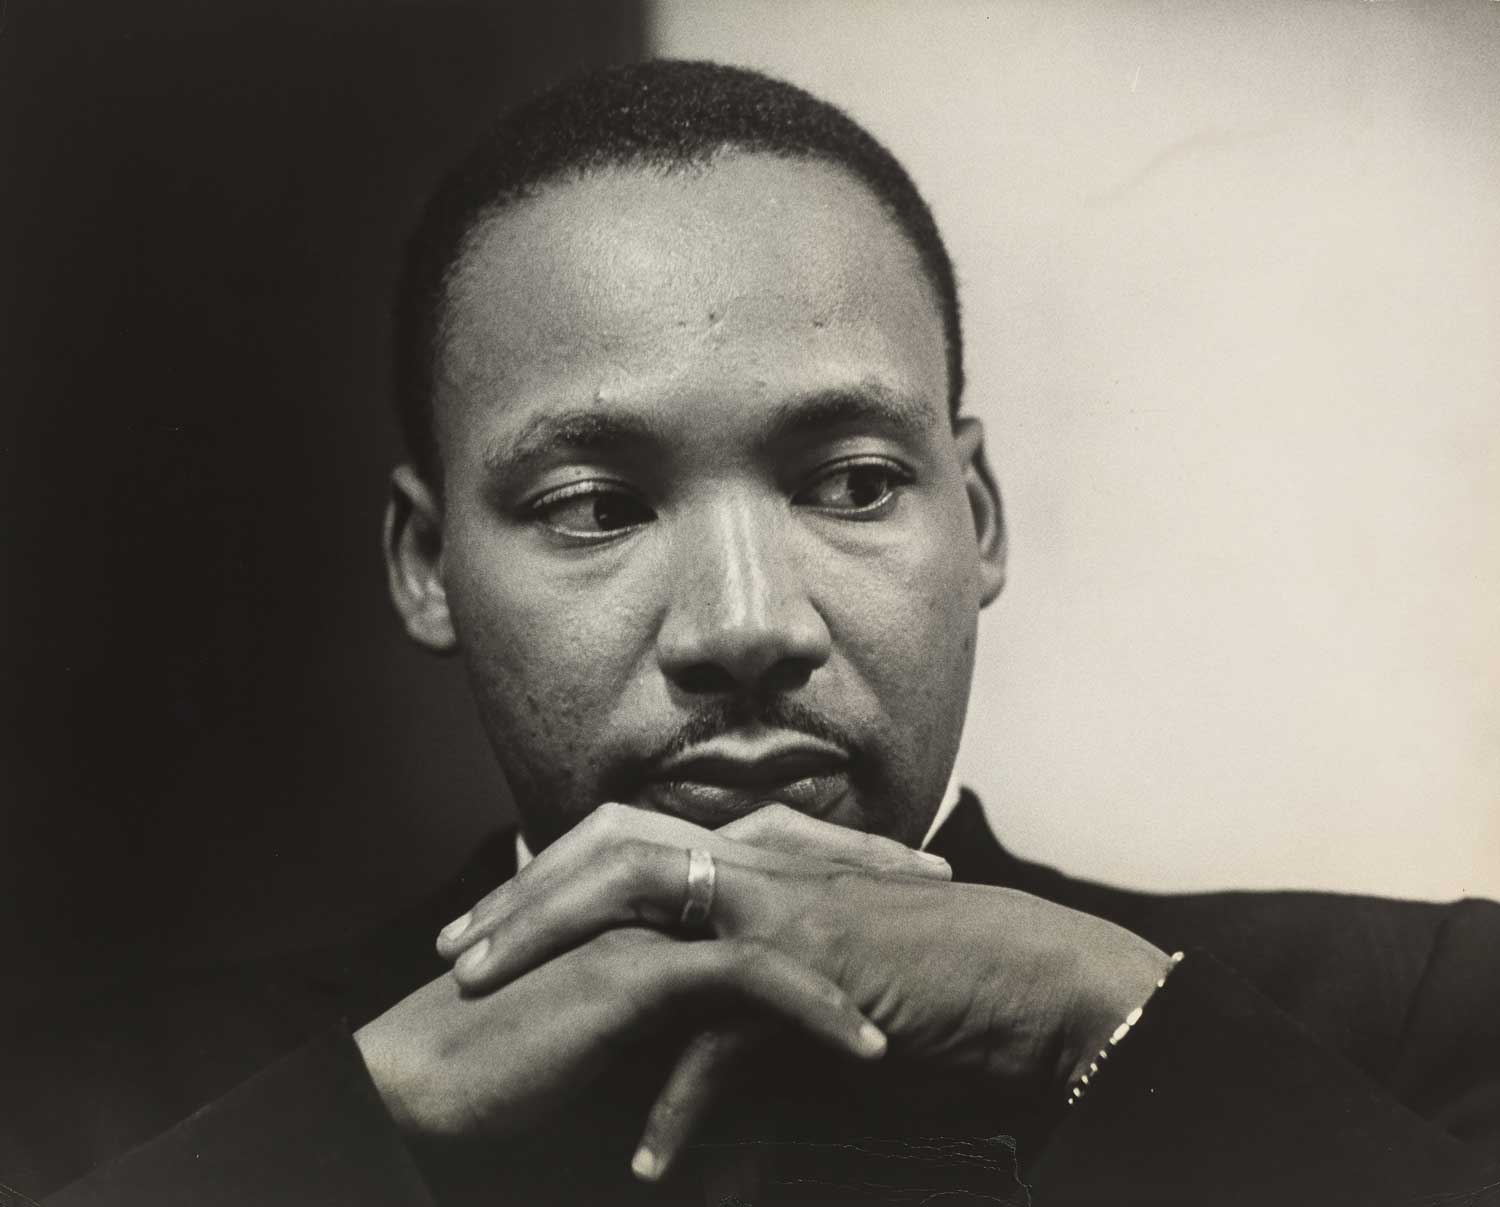 Preview image for National Portrait Gallery Remembers Martin Luther King Jr.  With Jack Lewis Hiller Photograph  press release